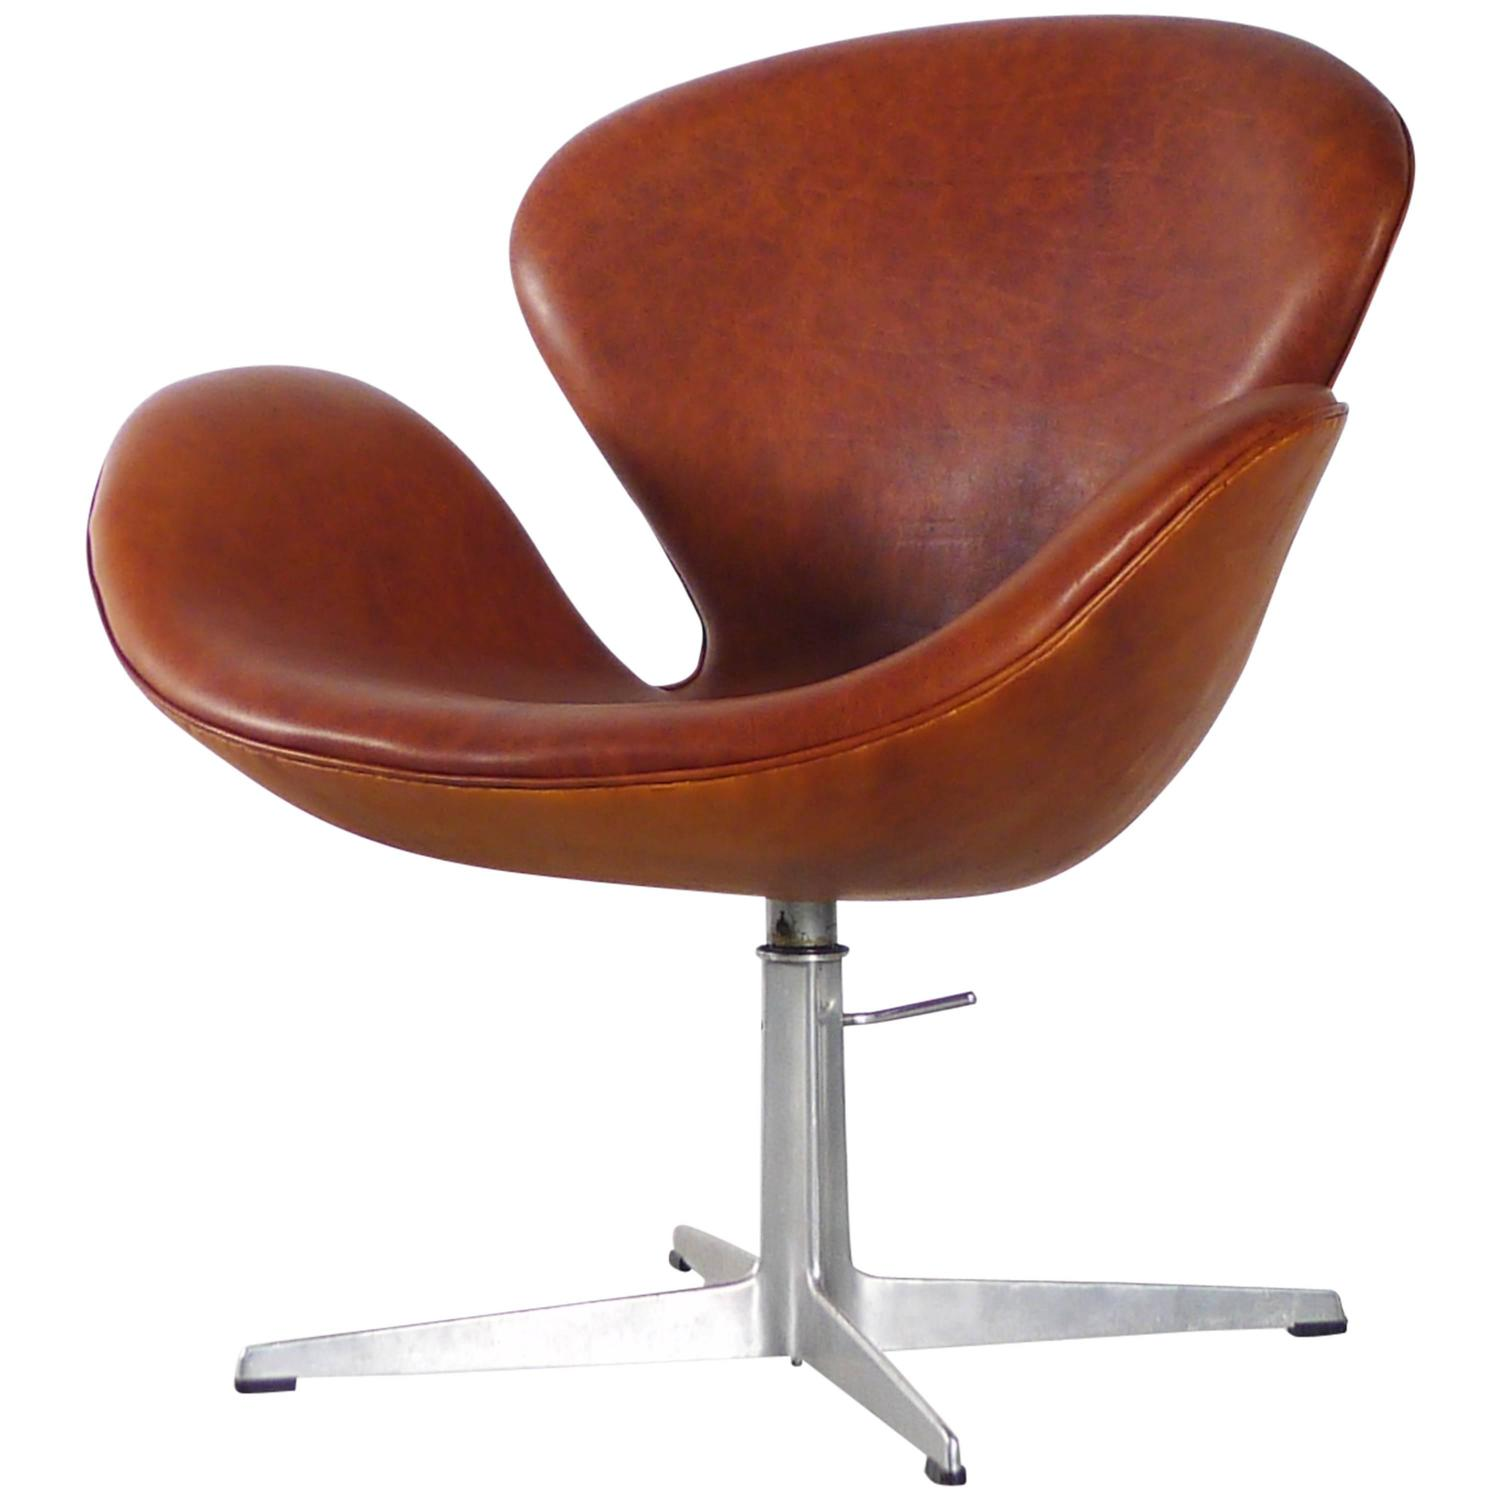 arne jacobsen swan chair tempur pedic office chairs leather for sale at 1stdibs